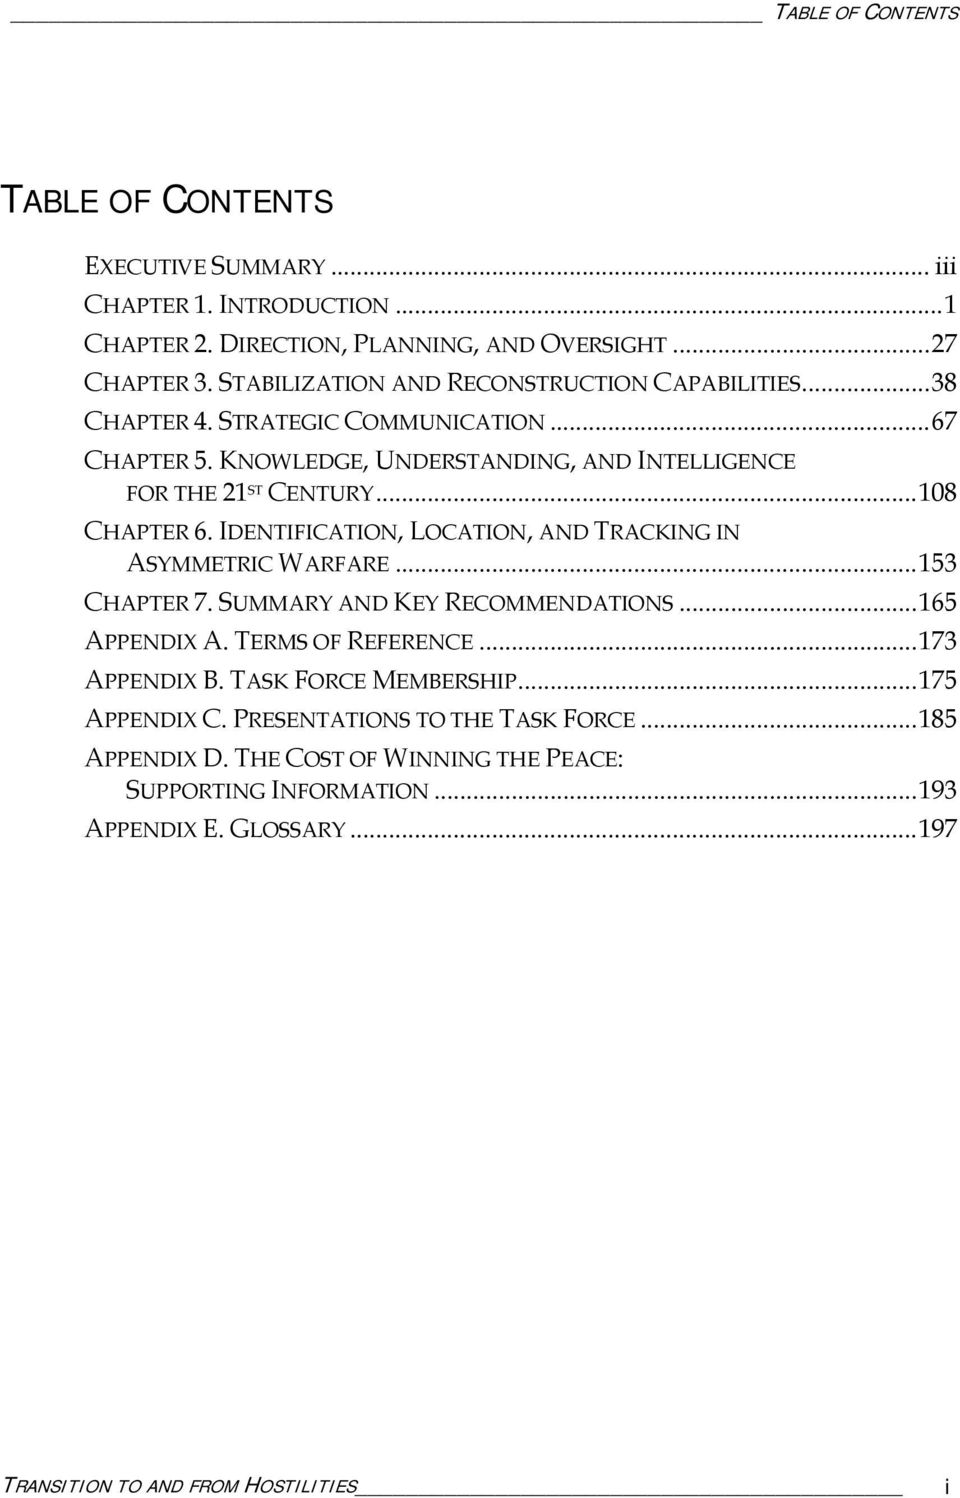 ..108 CHAPTER 6. IDENTIFICATION, LOCATION, AND TRACKING IN ASYMMETRIC WARFARE...153 CHAPTER 7. SUMMARY AND KEY RECOMMENDATIONS...165 APPENDIX A. TERMS OF REFERENCE...173 APPENDIX B.